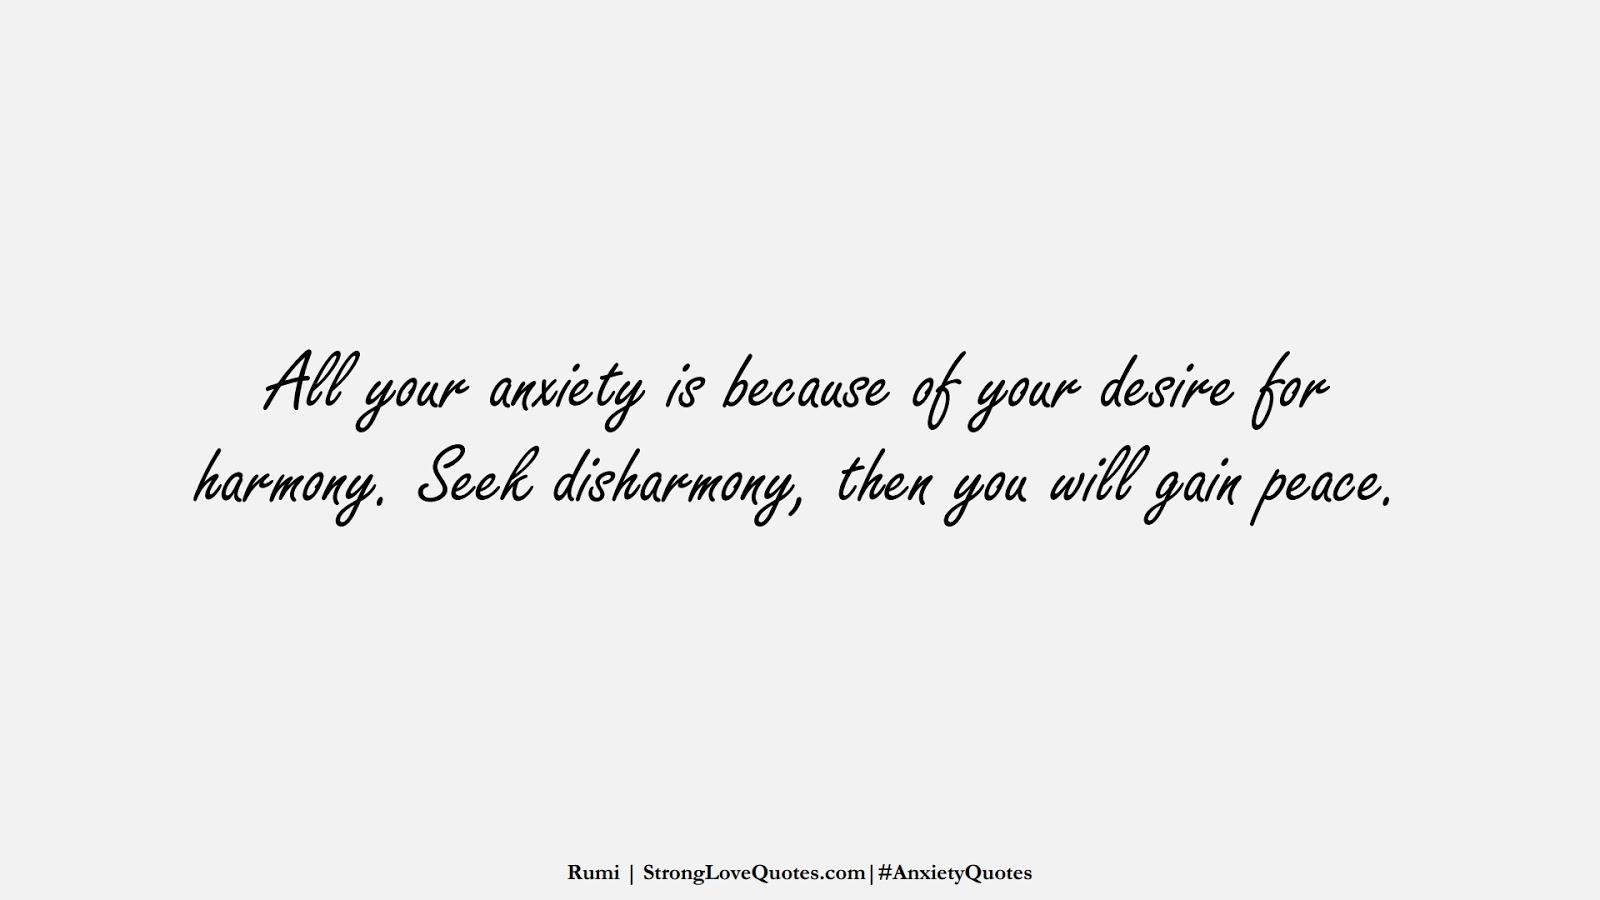 All your anxiety is because of your desire for harmony. Seek disharmony, then you will gain peace. (Rumi);  #AnxietyQuotes